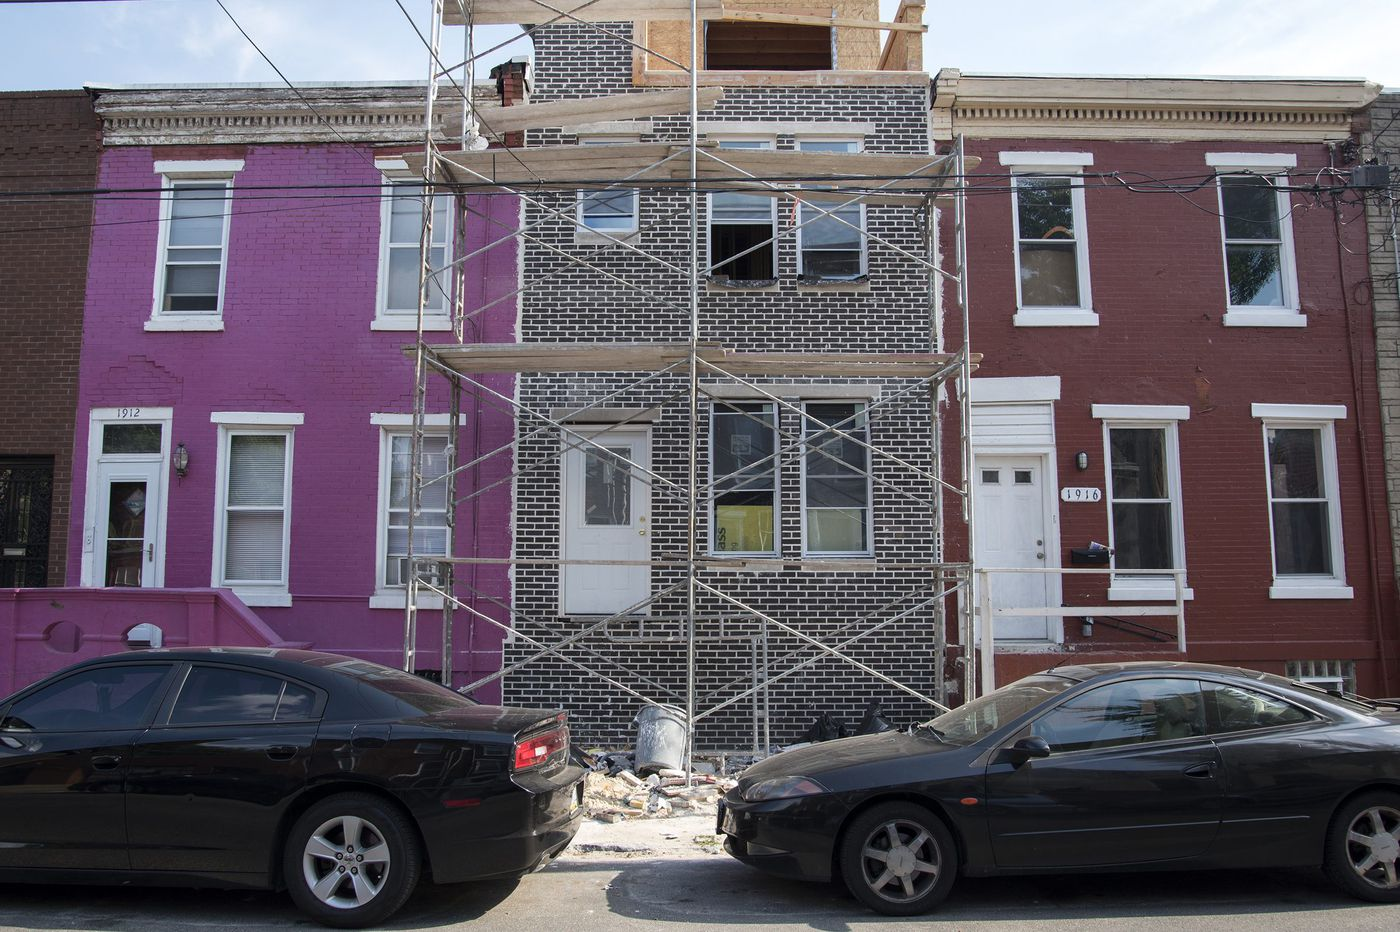 More 'errors' found in records of city land sales to Point Breeze developer